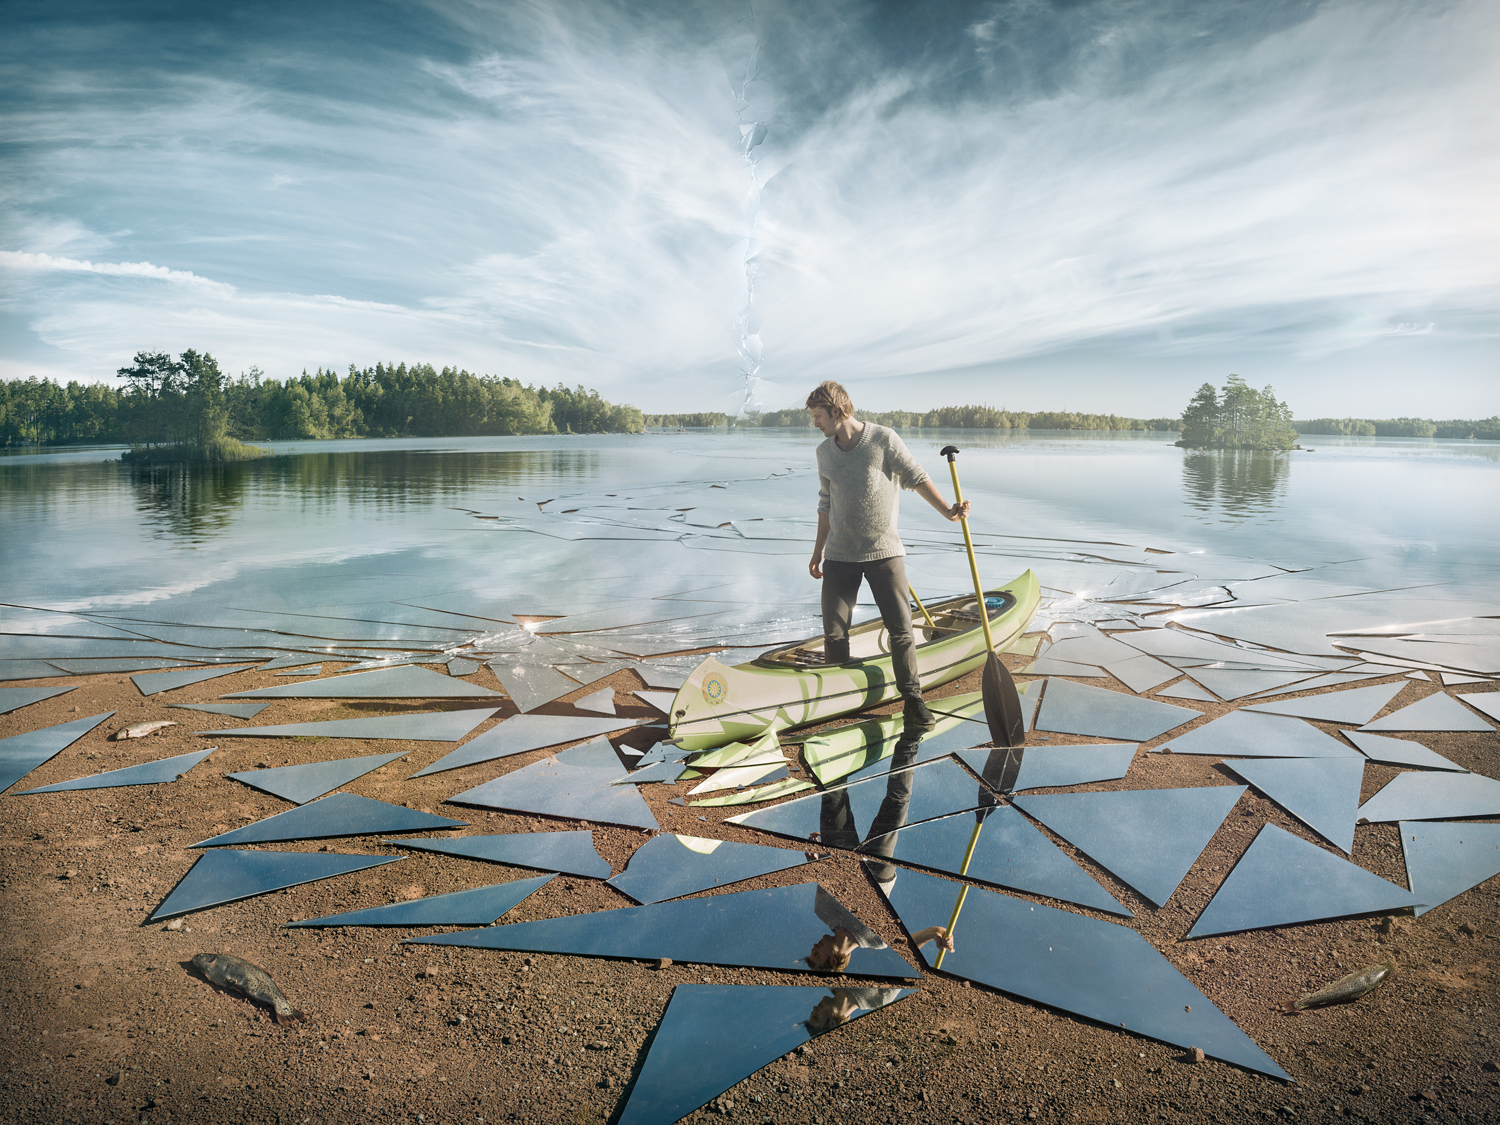 Erik Johansson Photo